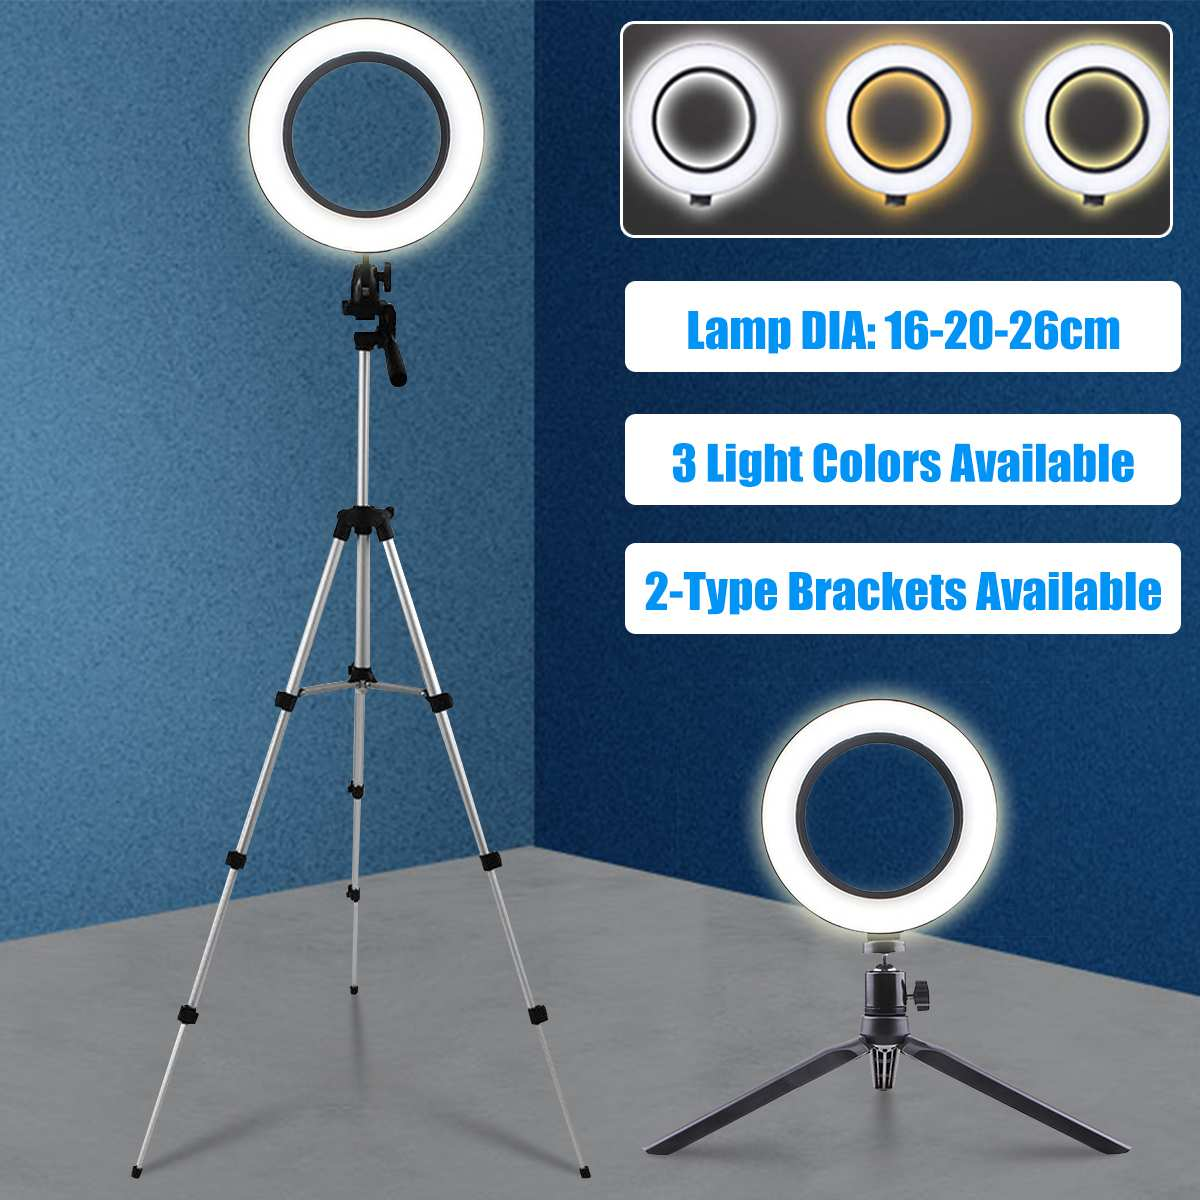 LED Studio Camera Selfie Ring Light Youtube Video Live Beauty Fill Lamp Photography Lighting Set With Tripod Bracket for Phone image